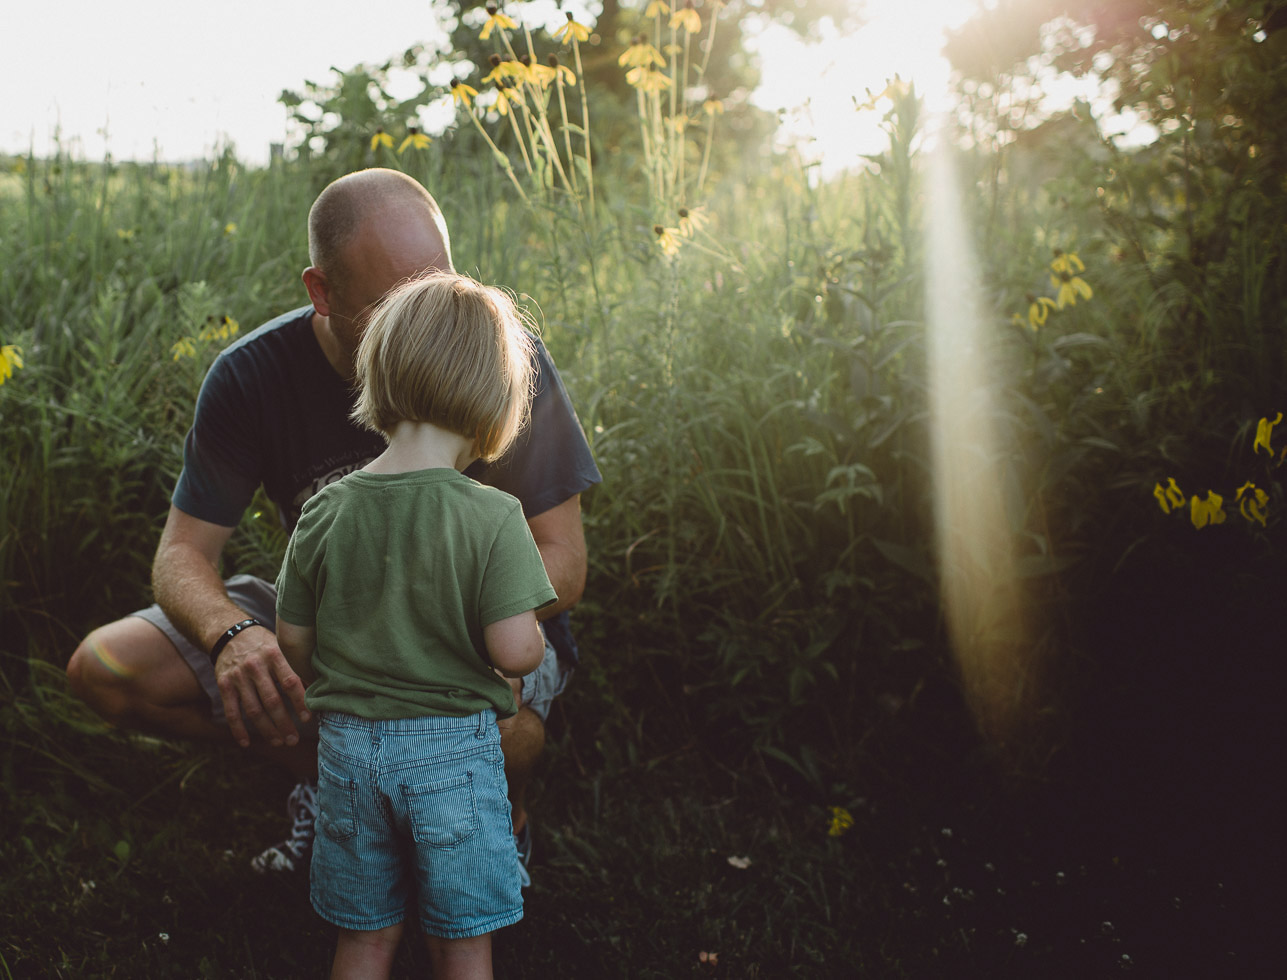 daughter showing father a flower within sun flare of an open field